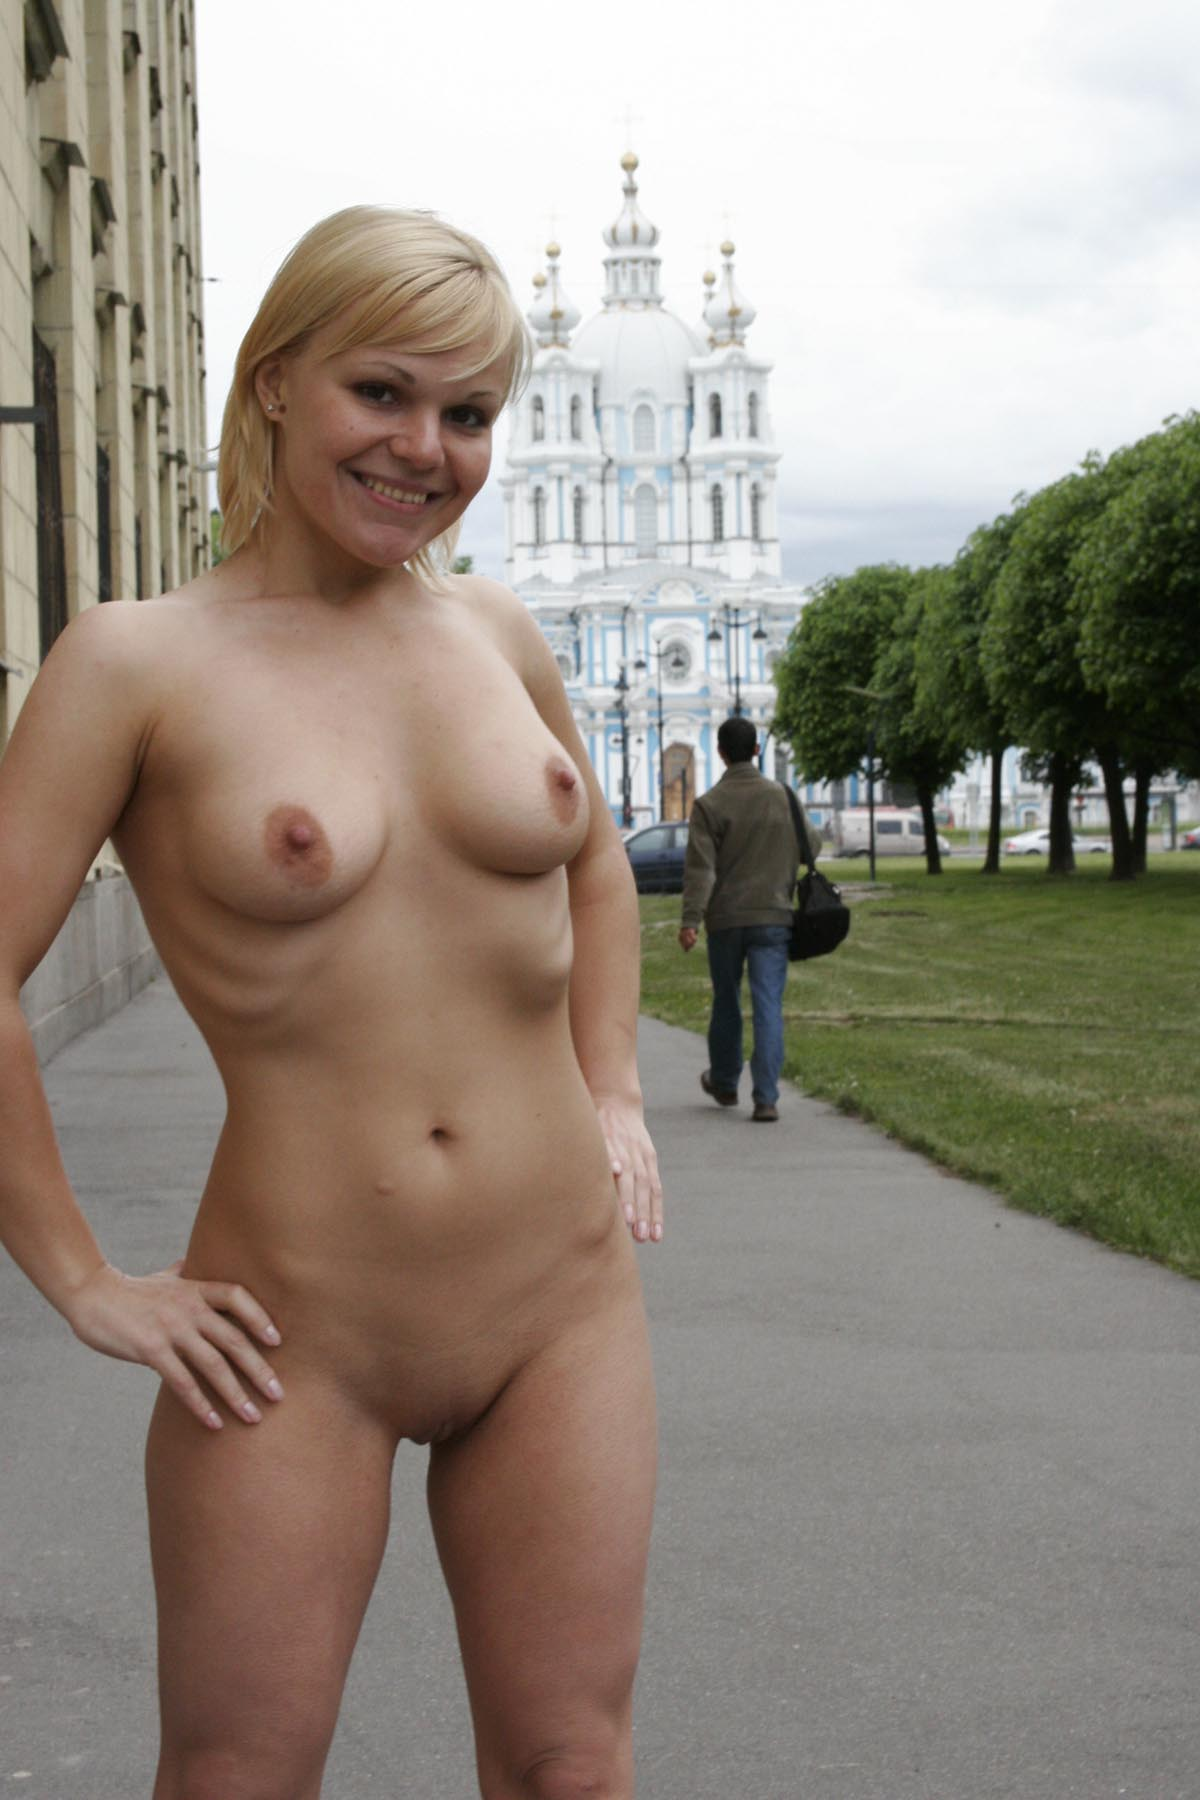 Blonde college nude